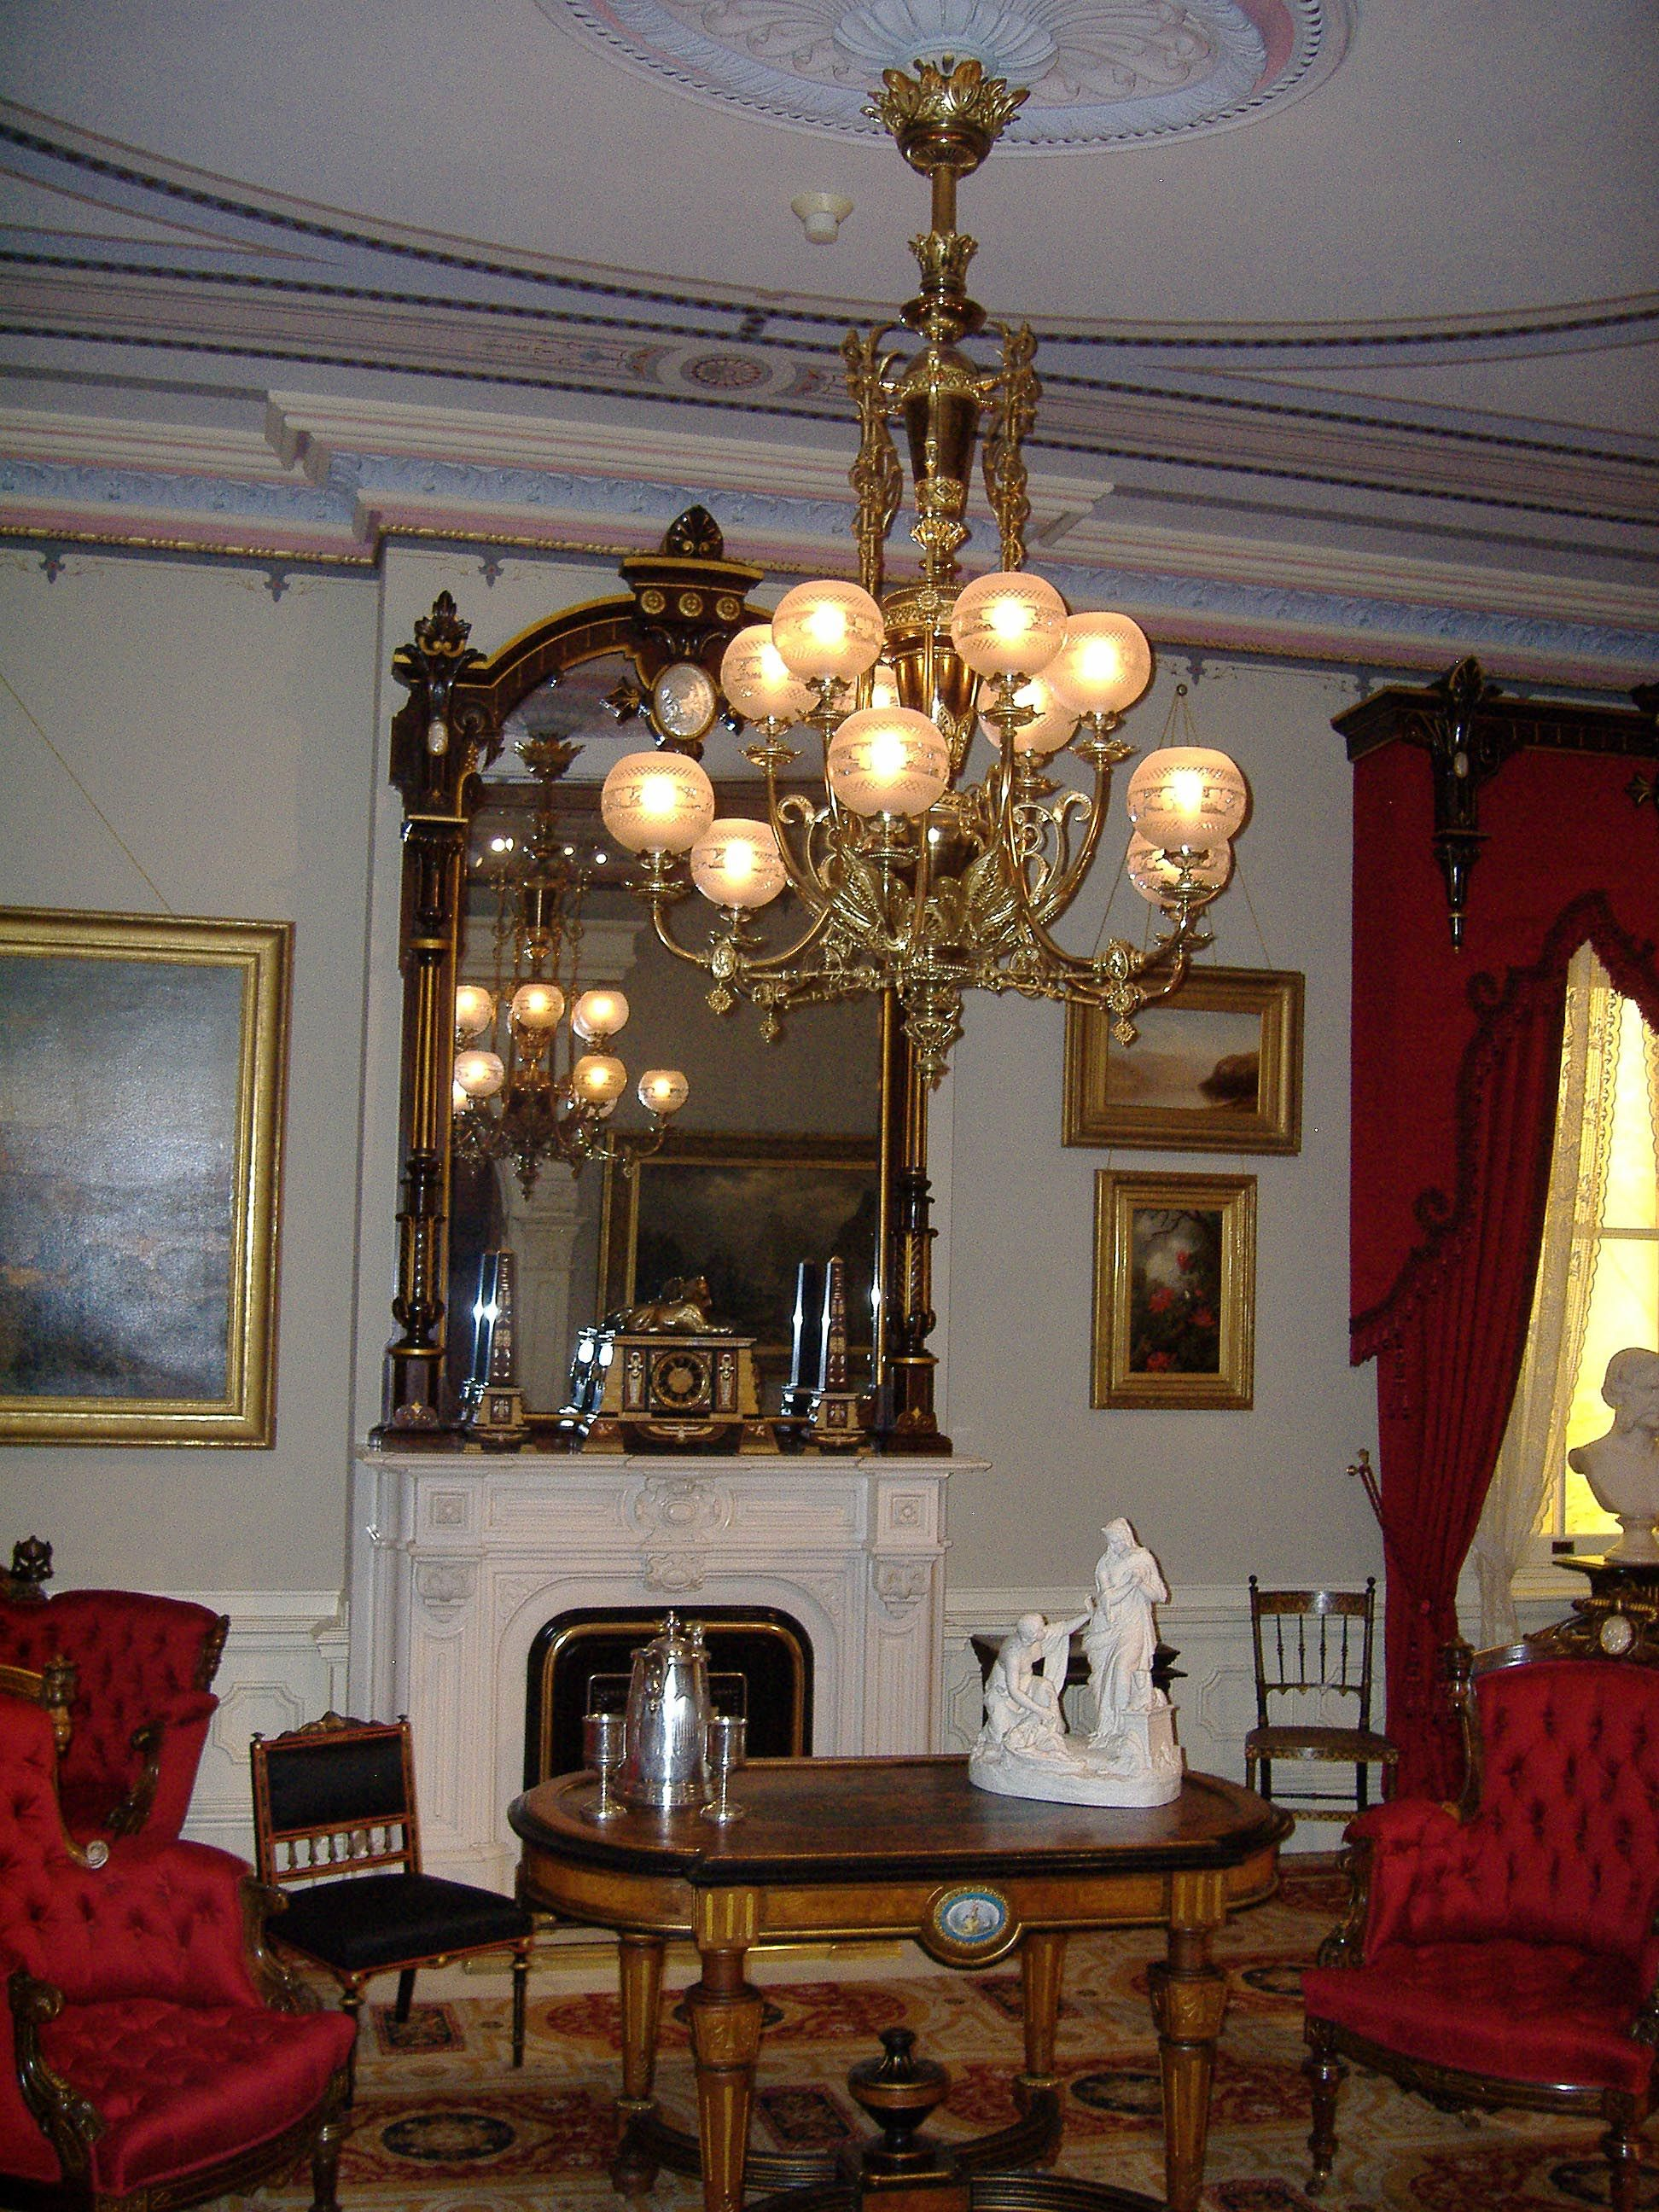 American 1860s Parlor Mantle And Chandelier Victorian Interiors Parlor Room Interior